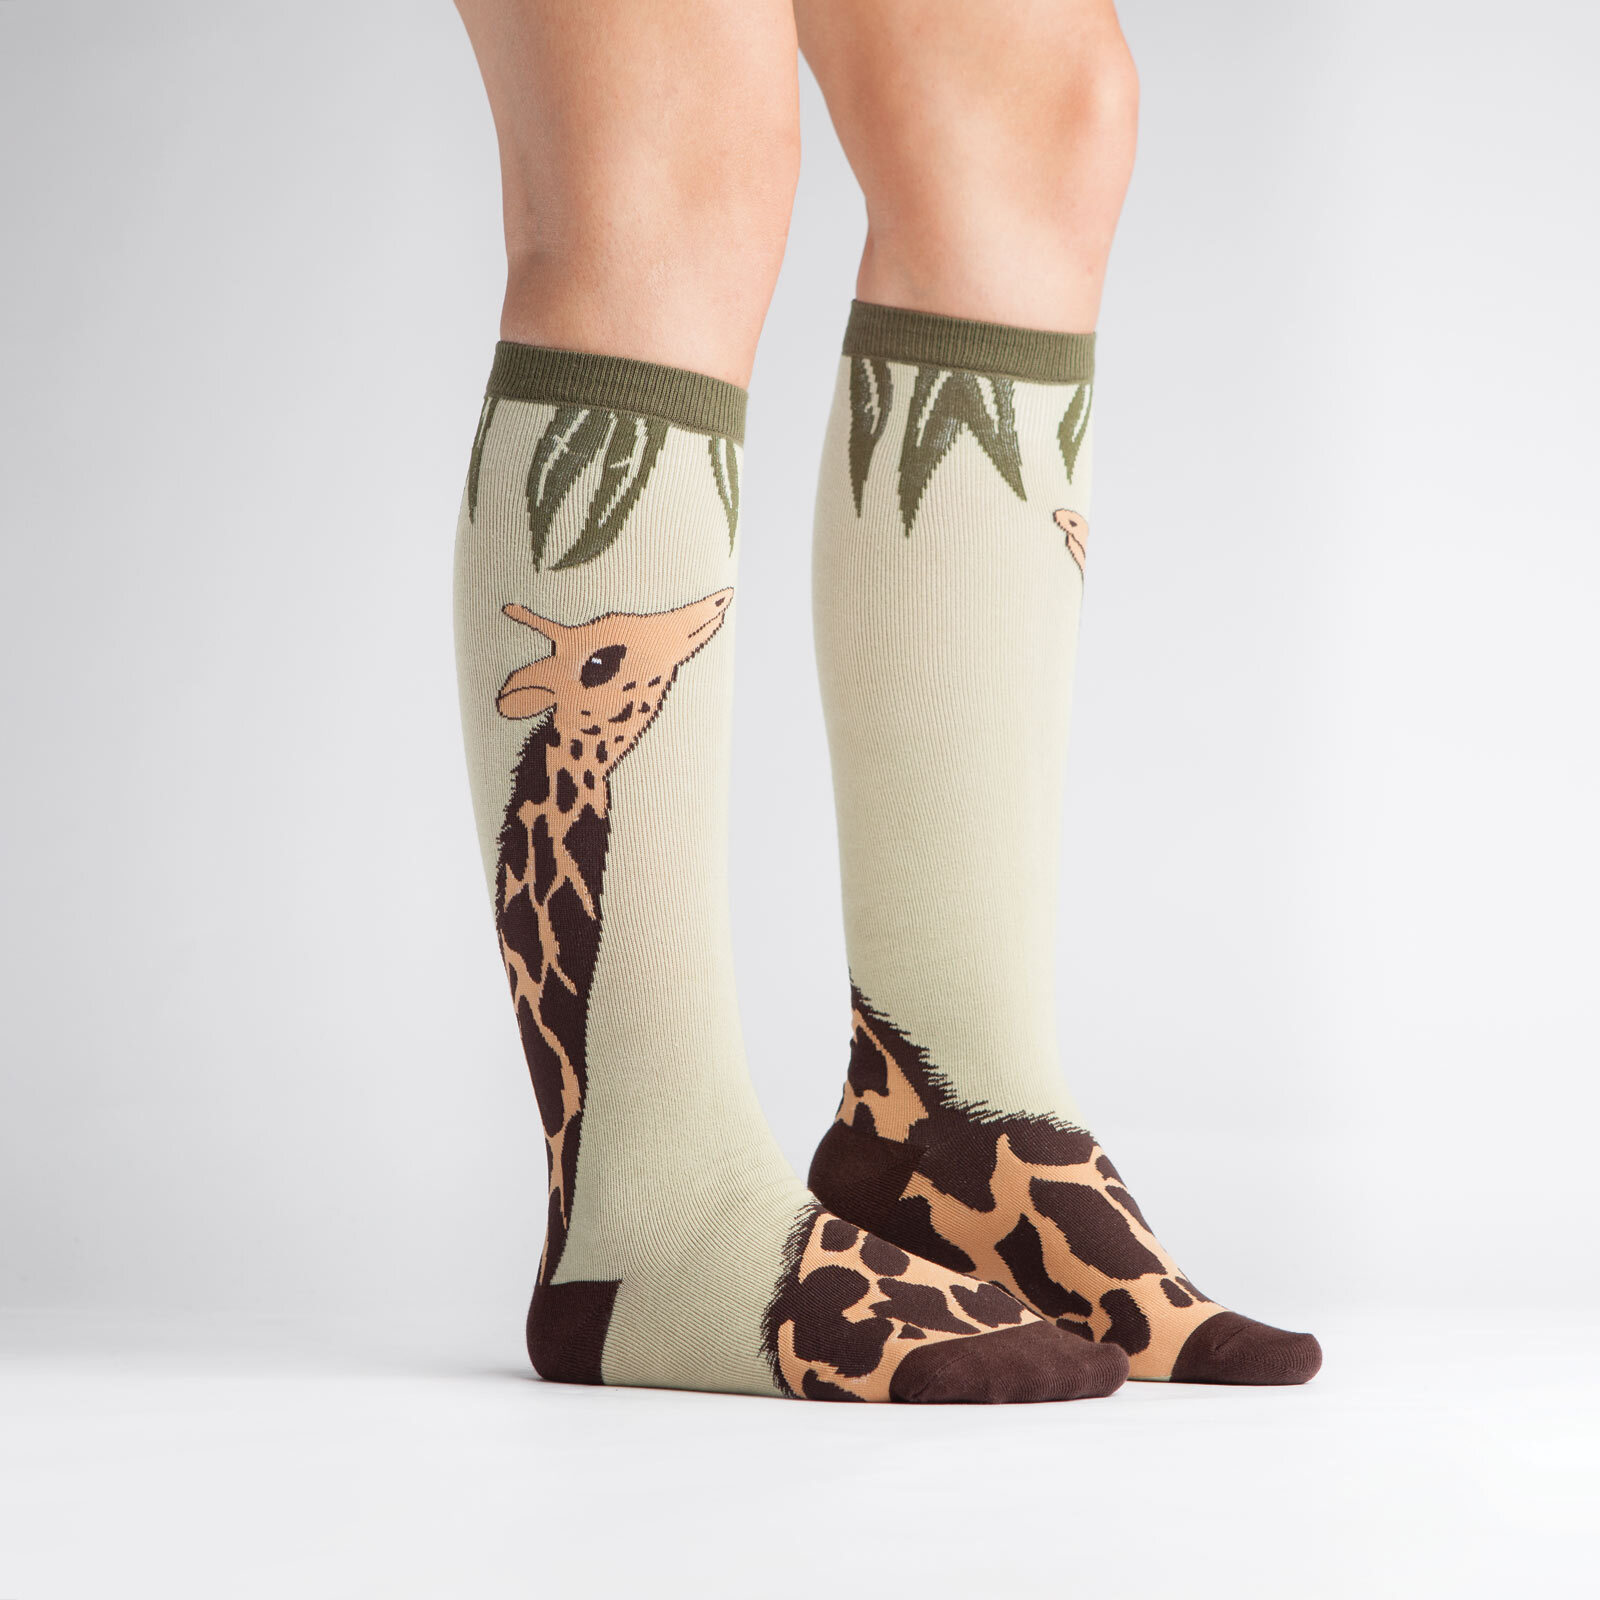 model side view of Giraffe Knee High Socks Brown and Green - Women's